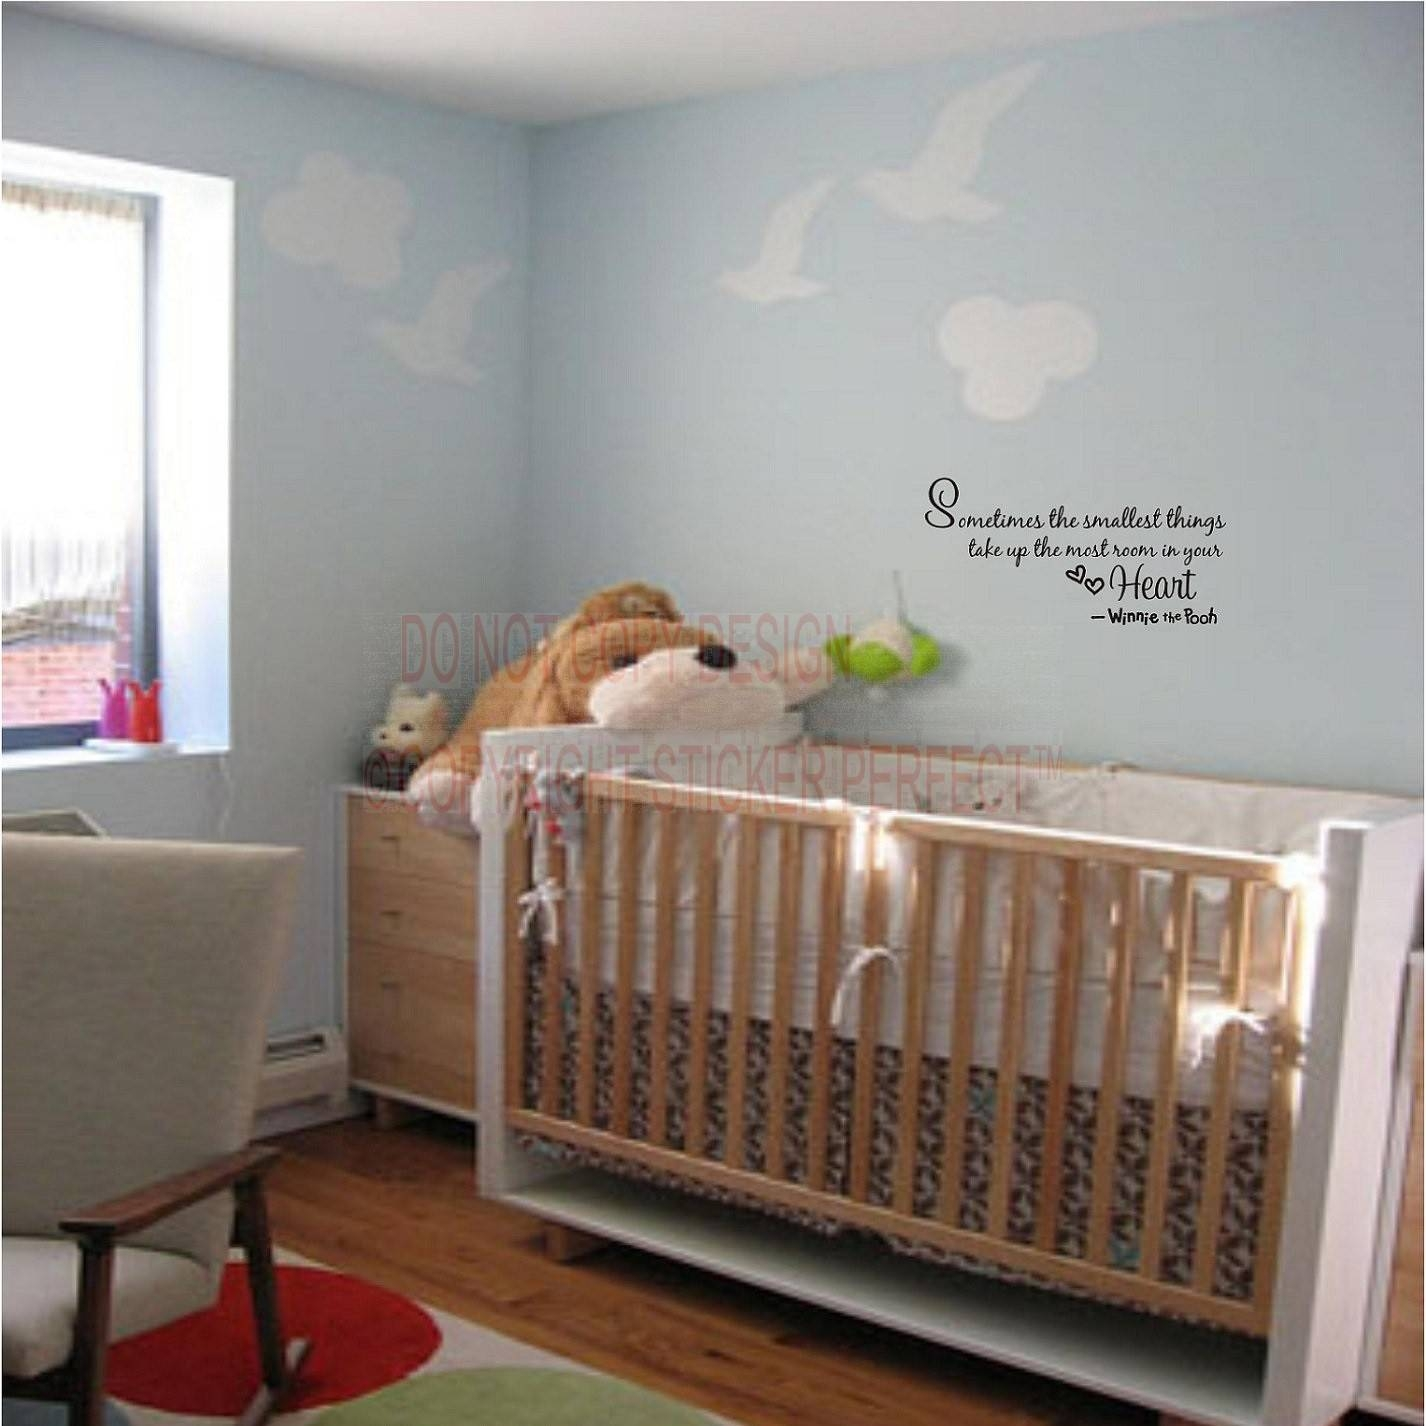 Best Sellers Regarding Latest Winnie The Pooh Nursery Quotes Wall Art (View 3 of 20)